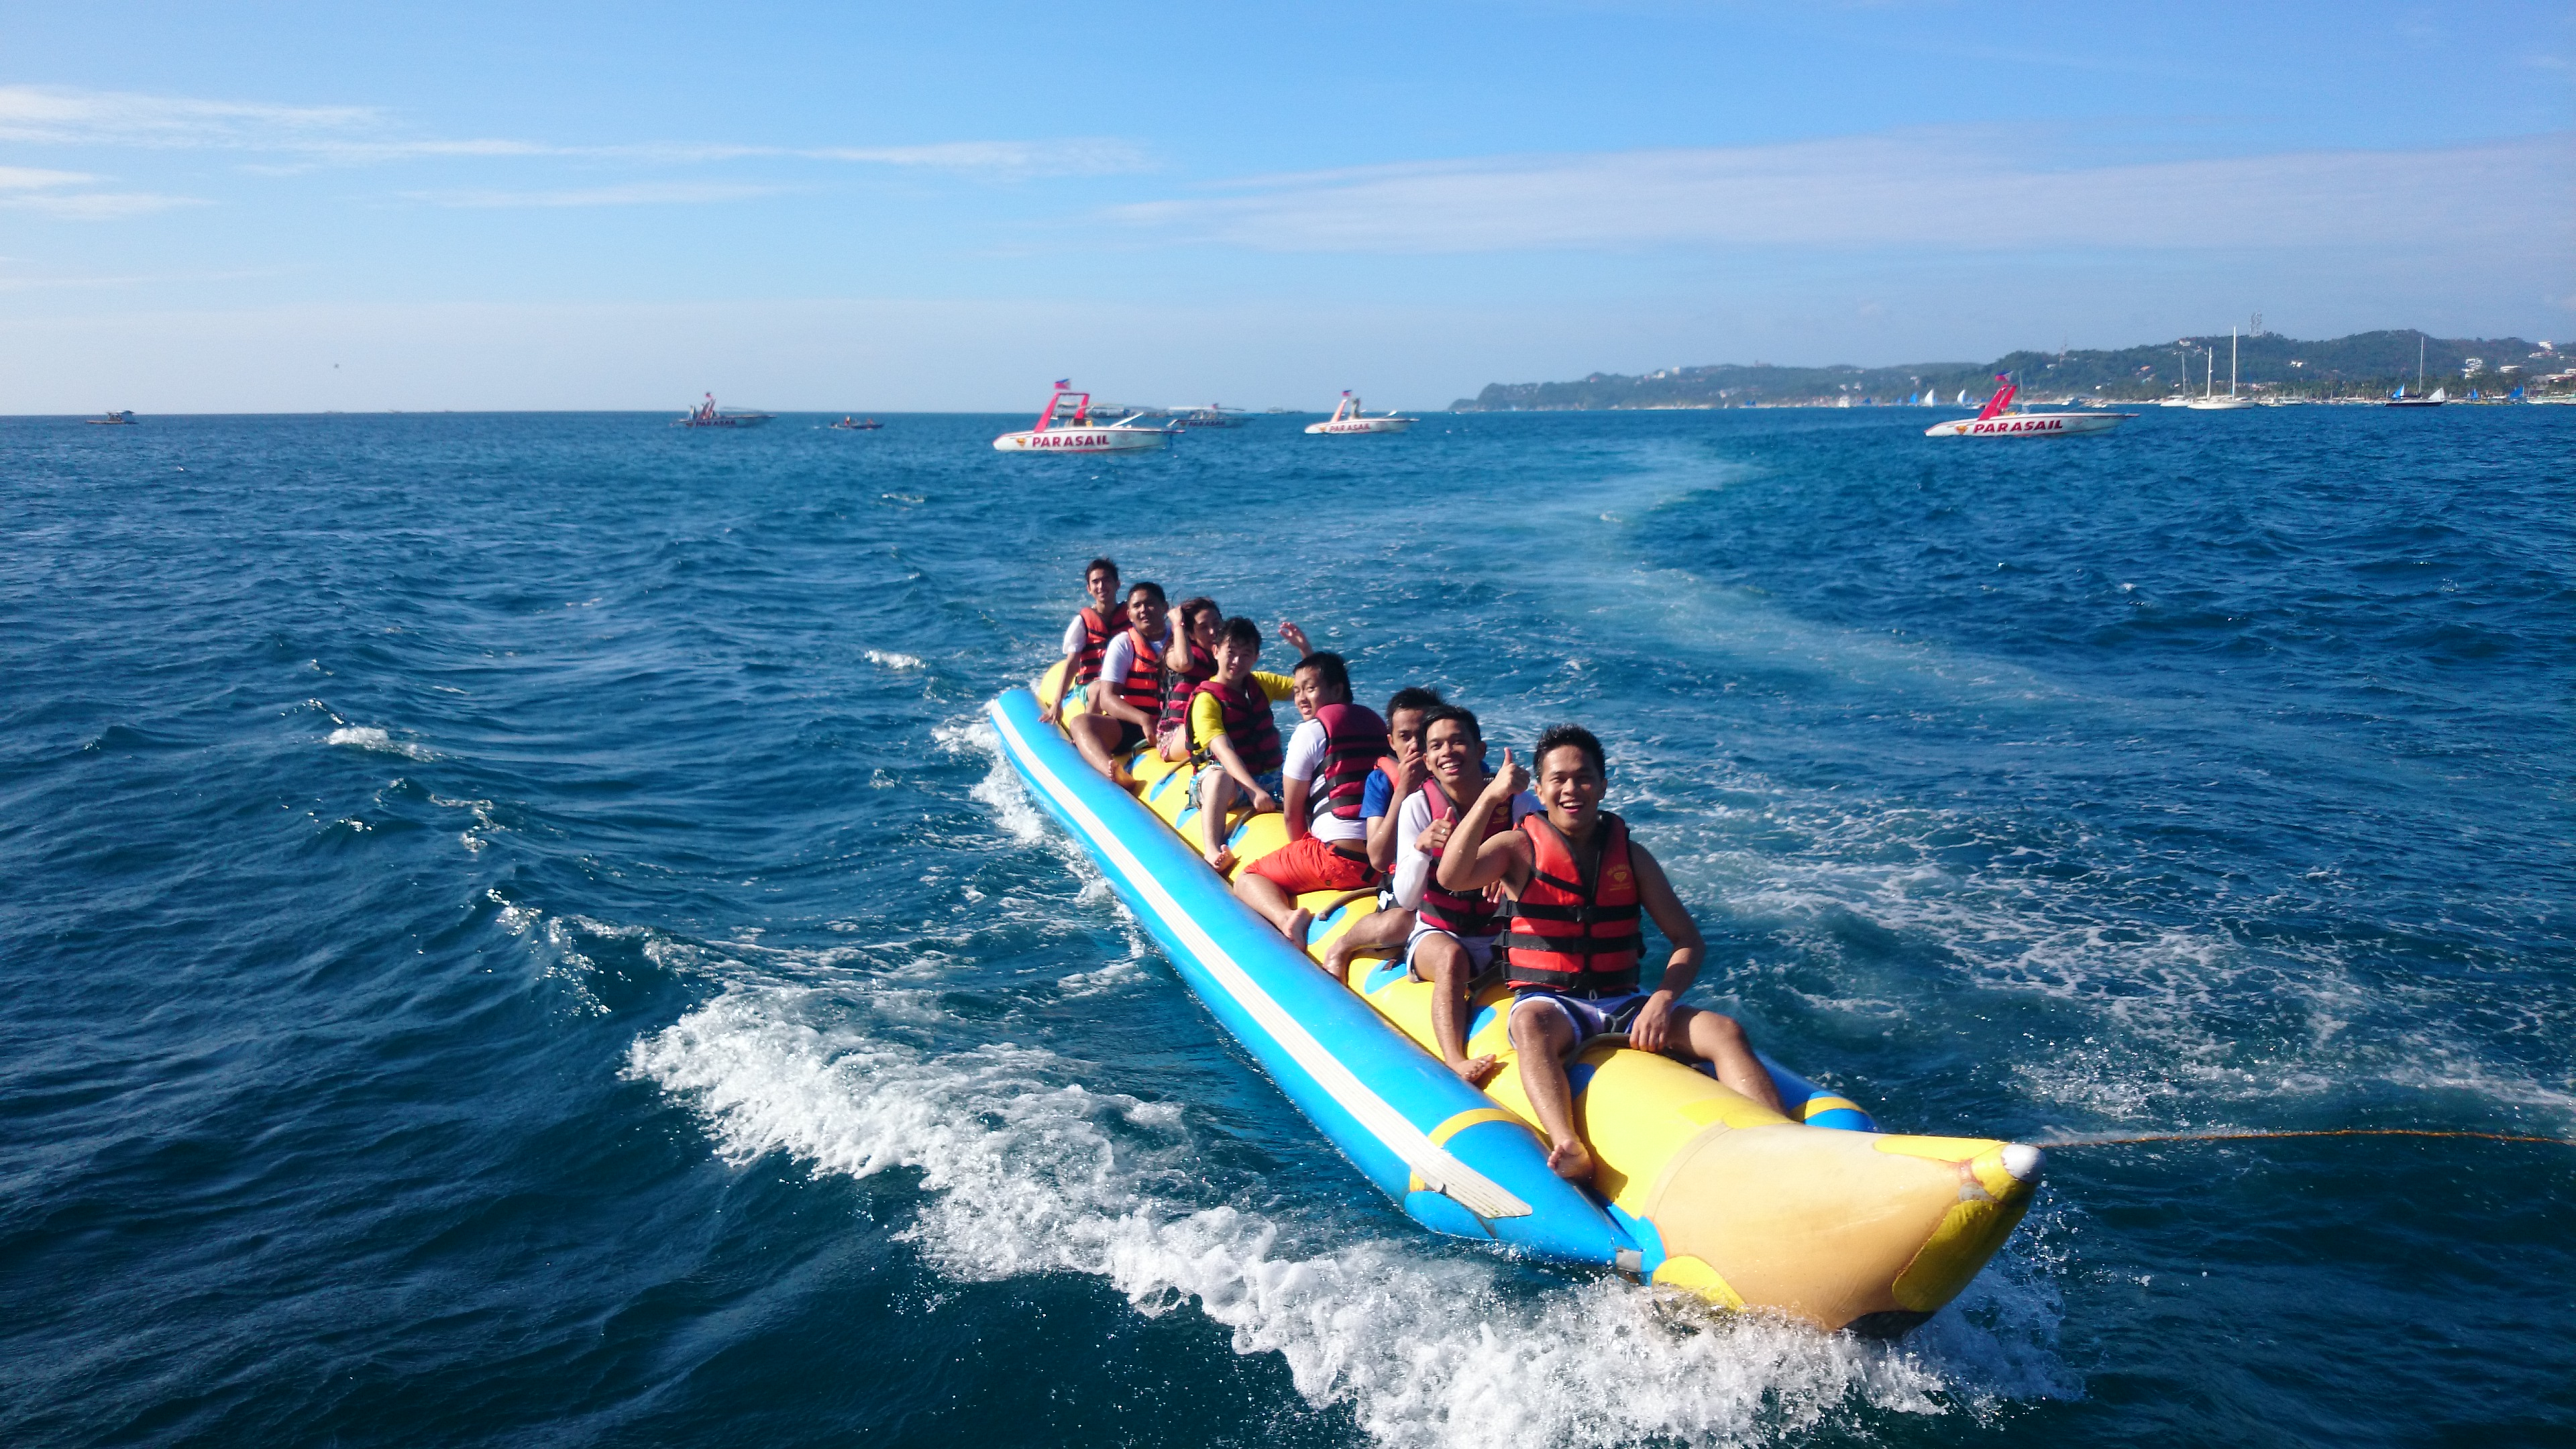 Luxury Rental A Center Point For Water Sports Activities